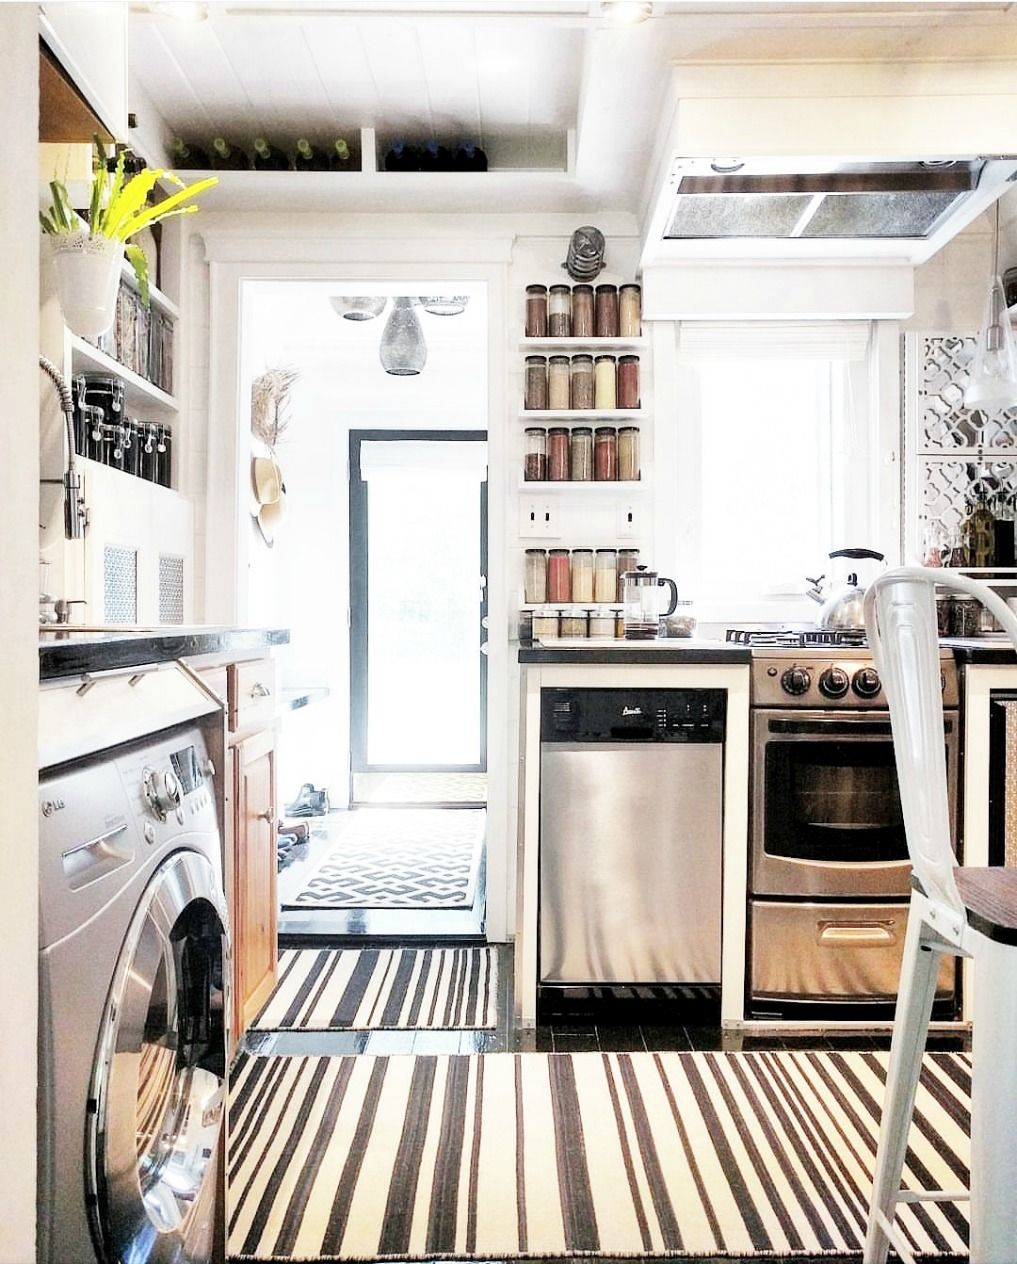 Eclectic Home Tour - Insieme House | Tiny houses, House tours and ...